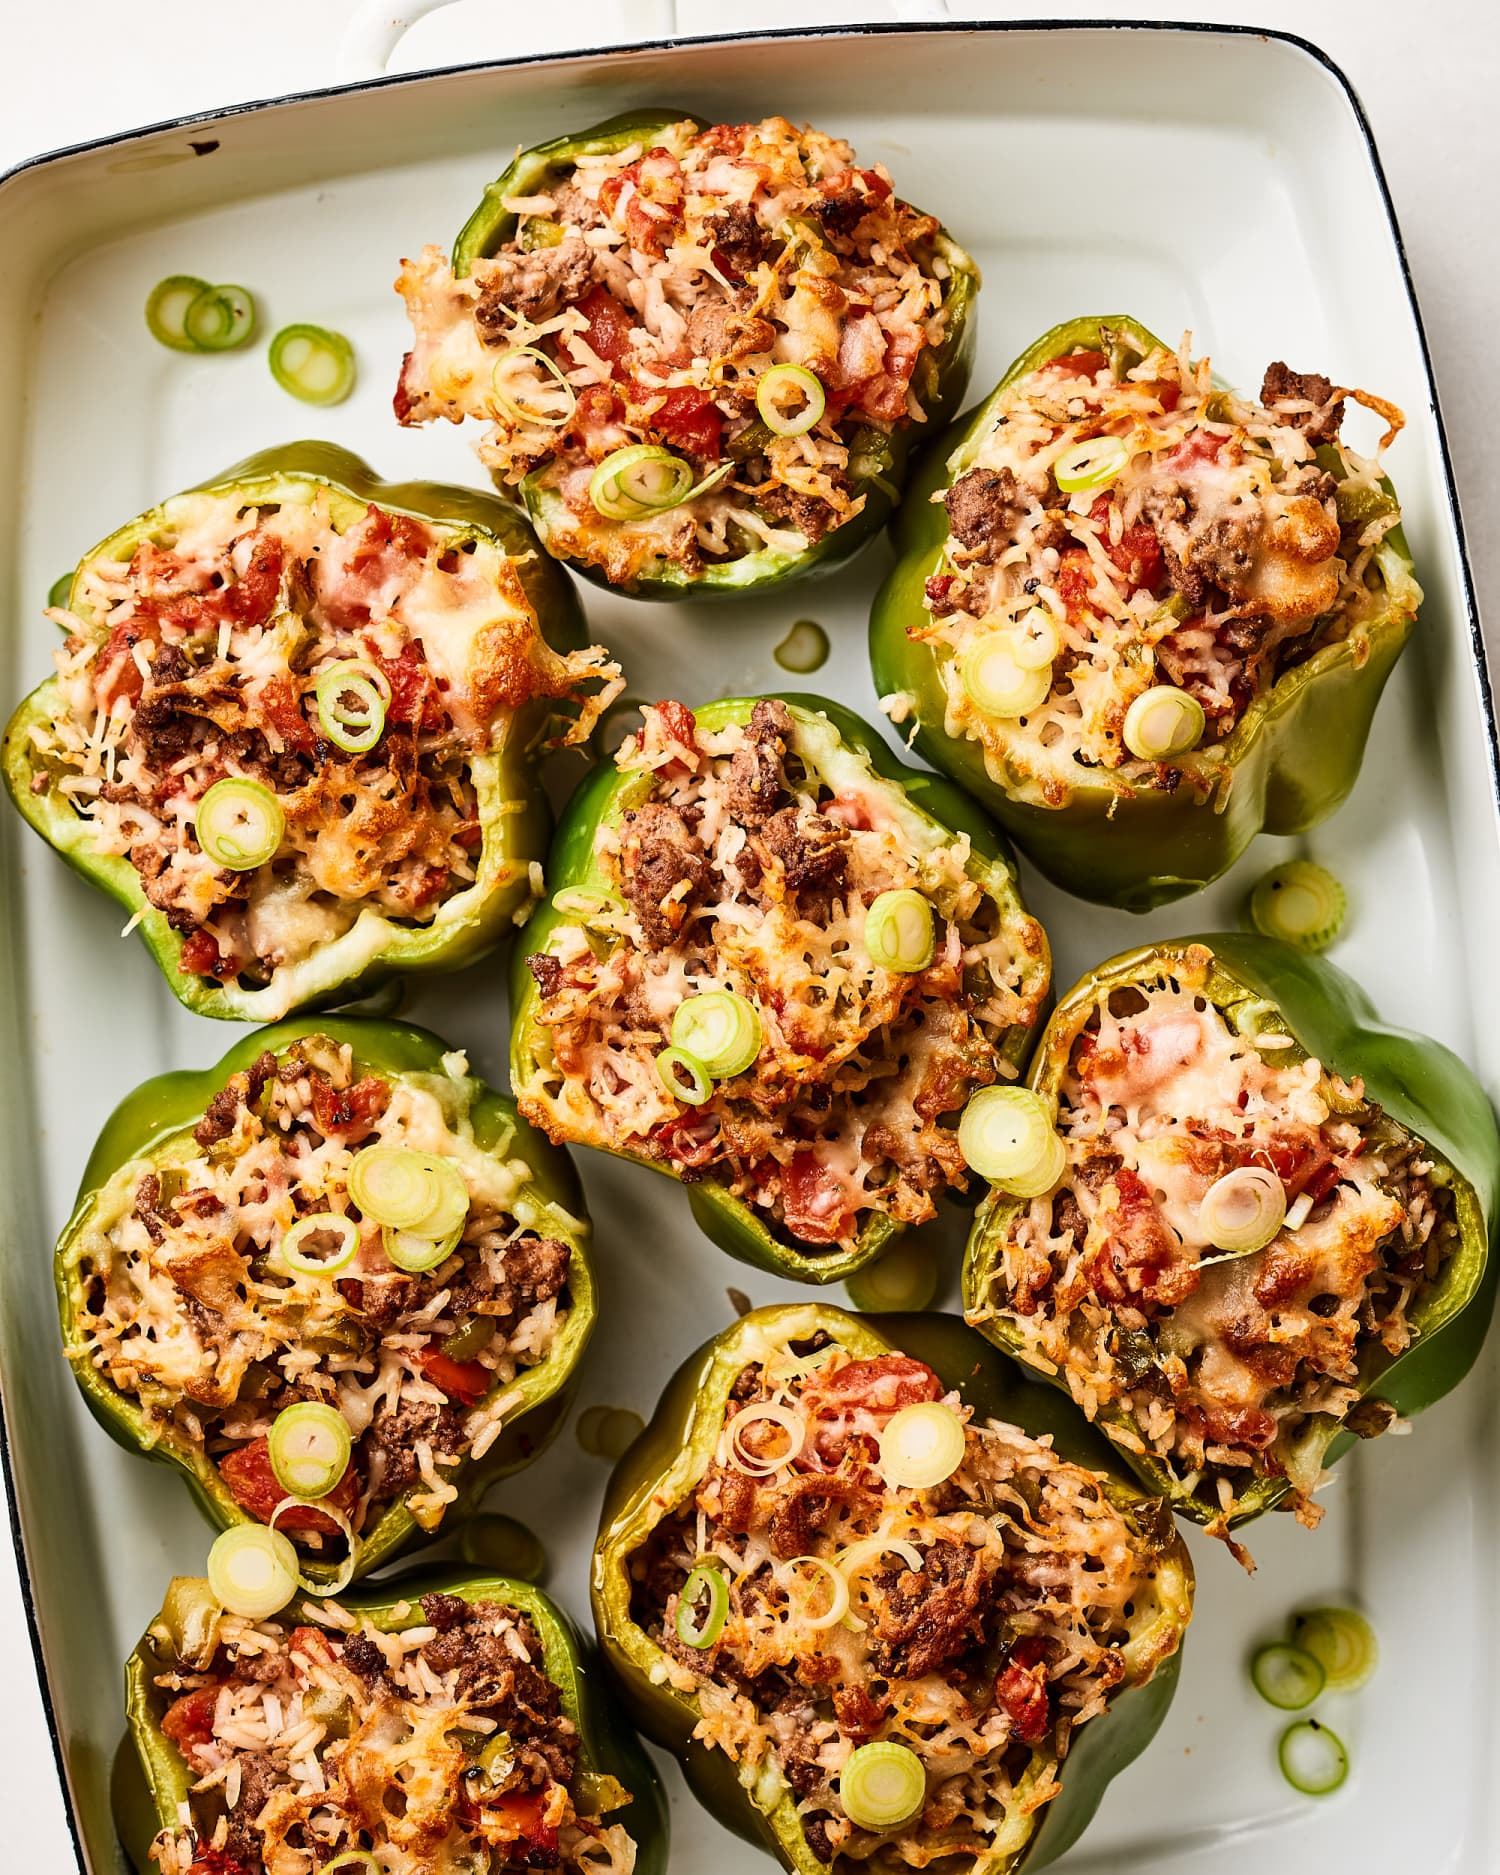 Stuffed Peppers Are an Easy Weeknight Win